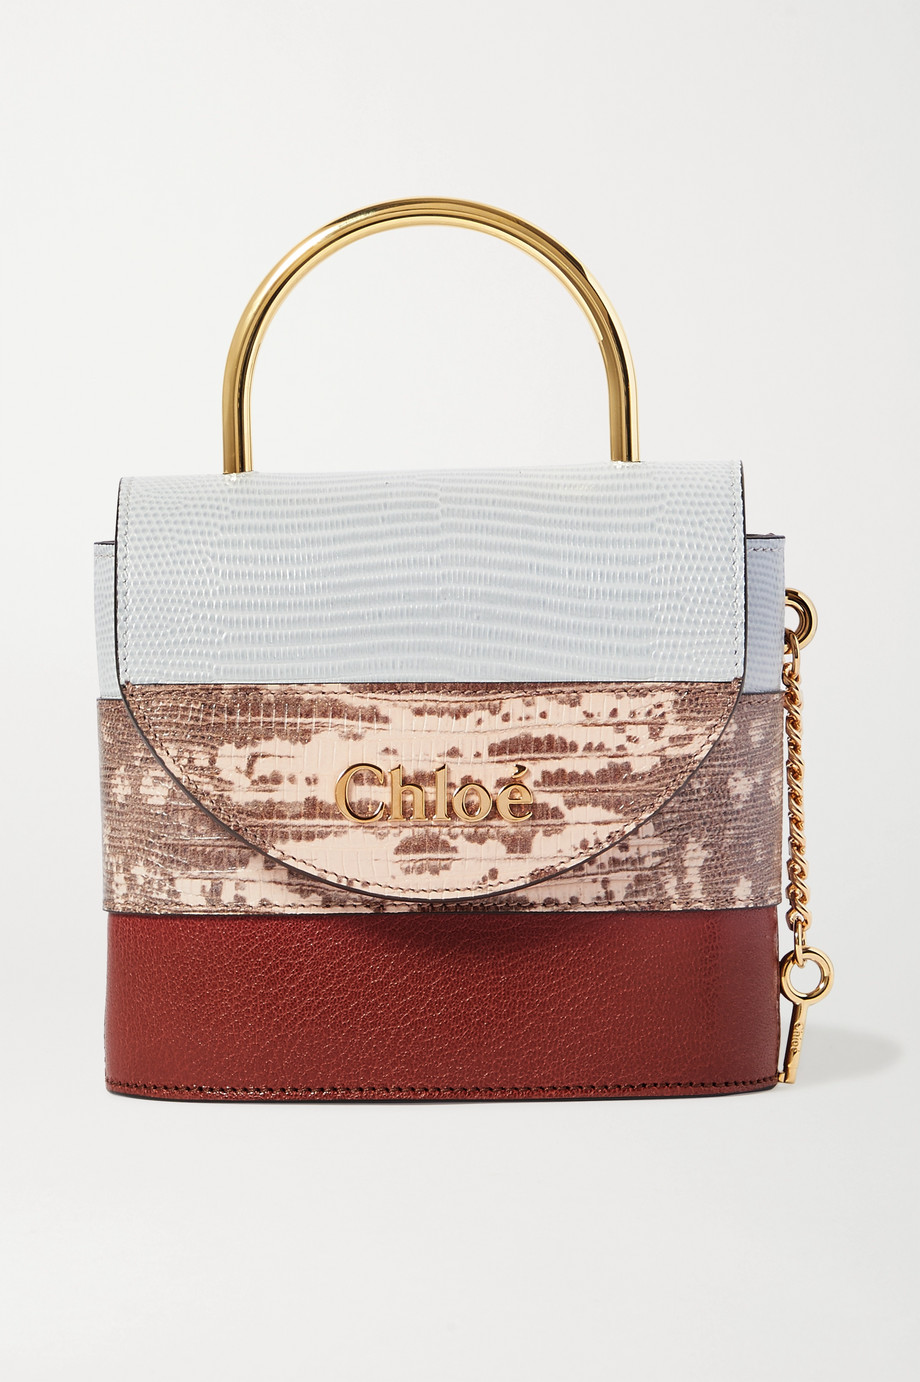 Chloé Aby Lock small lizard-effect leather shoulder bag